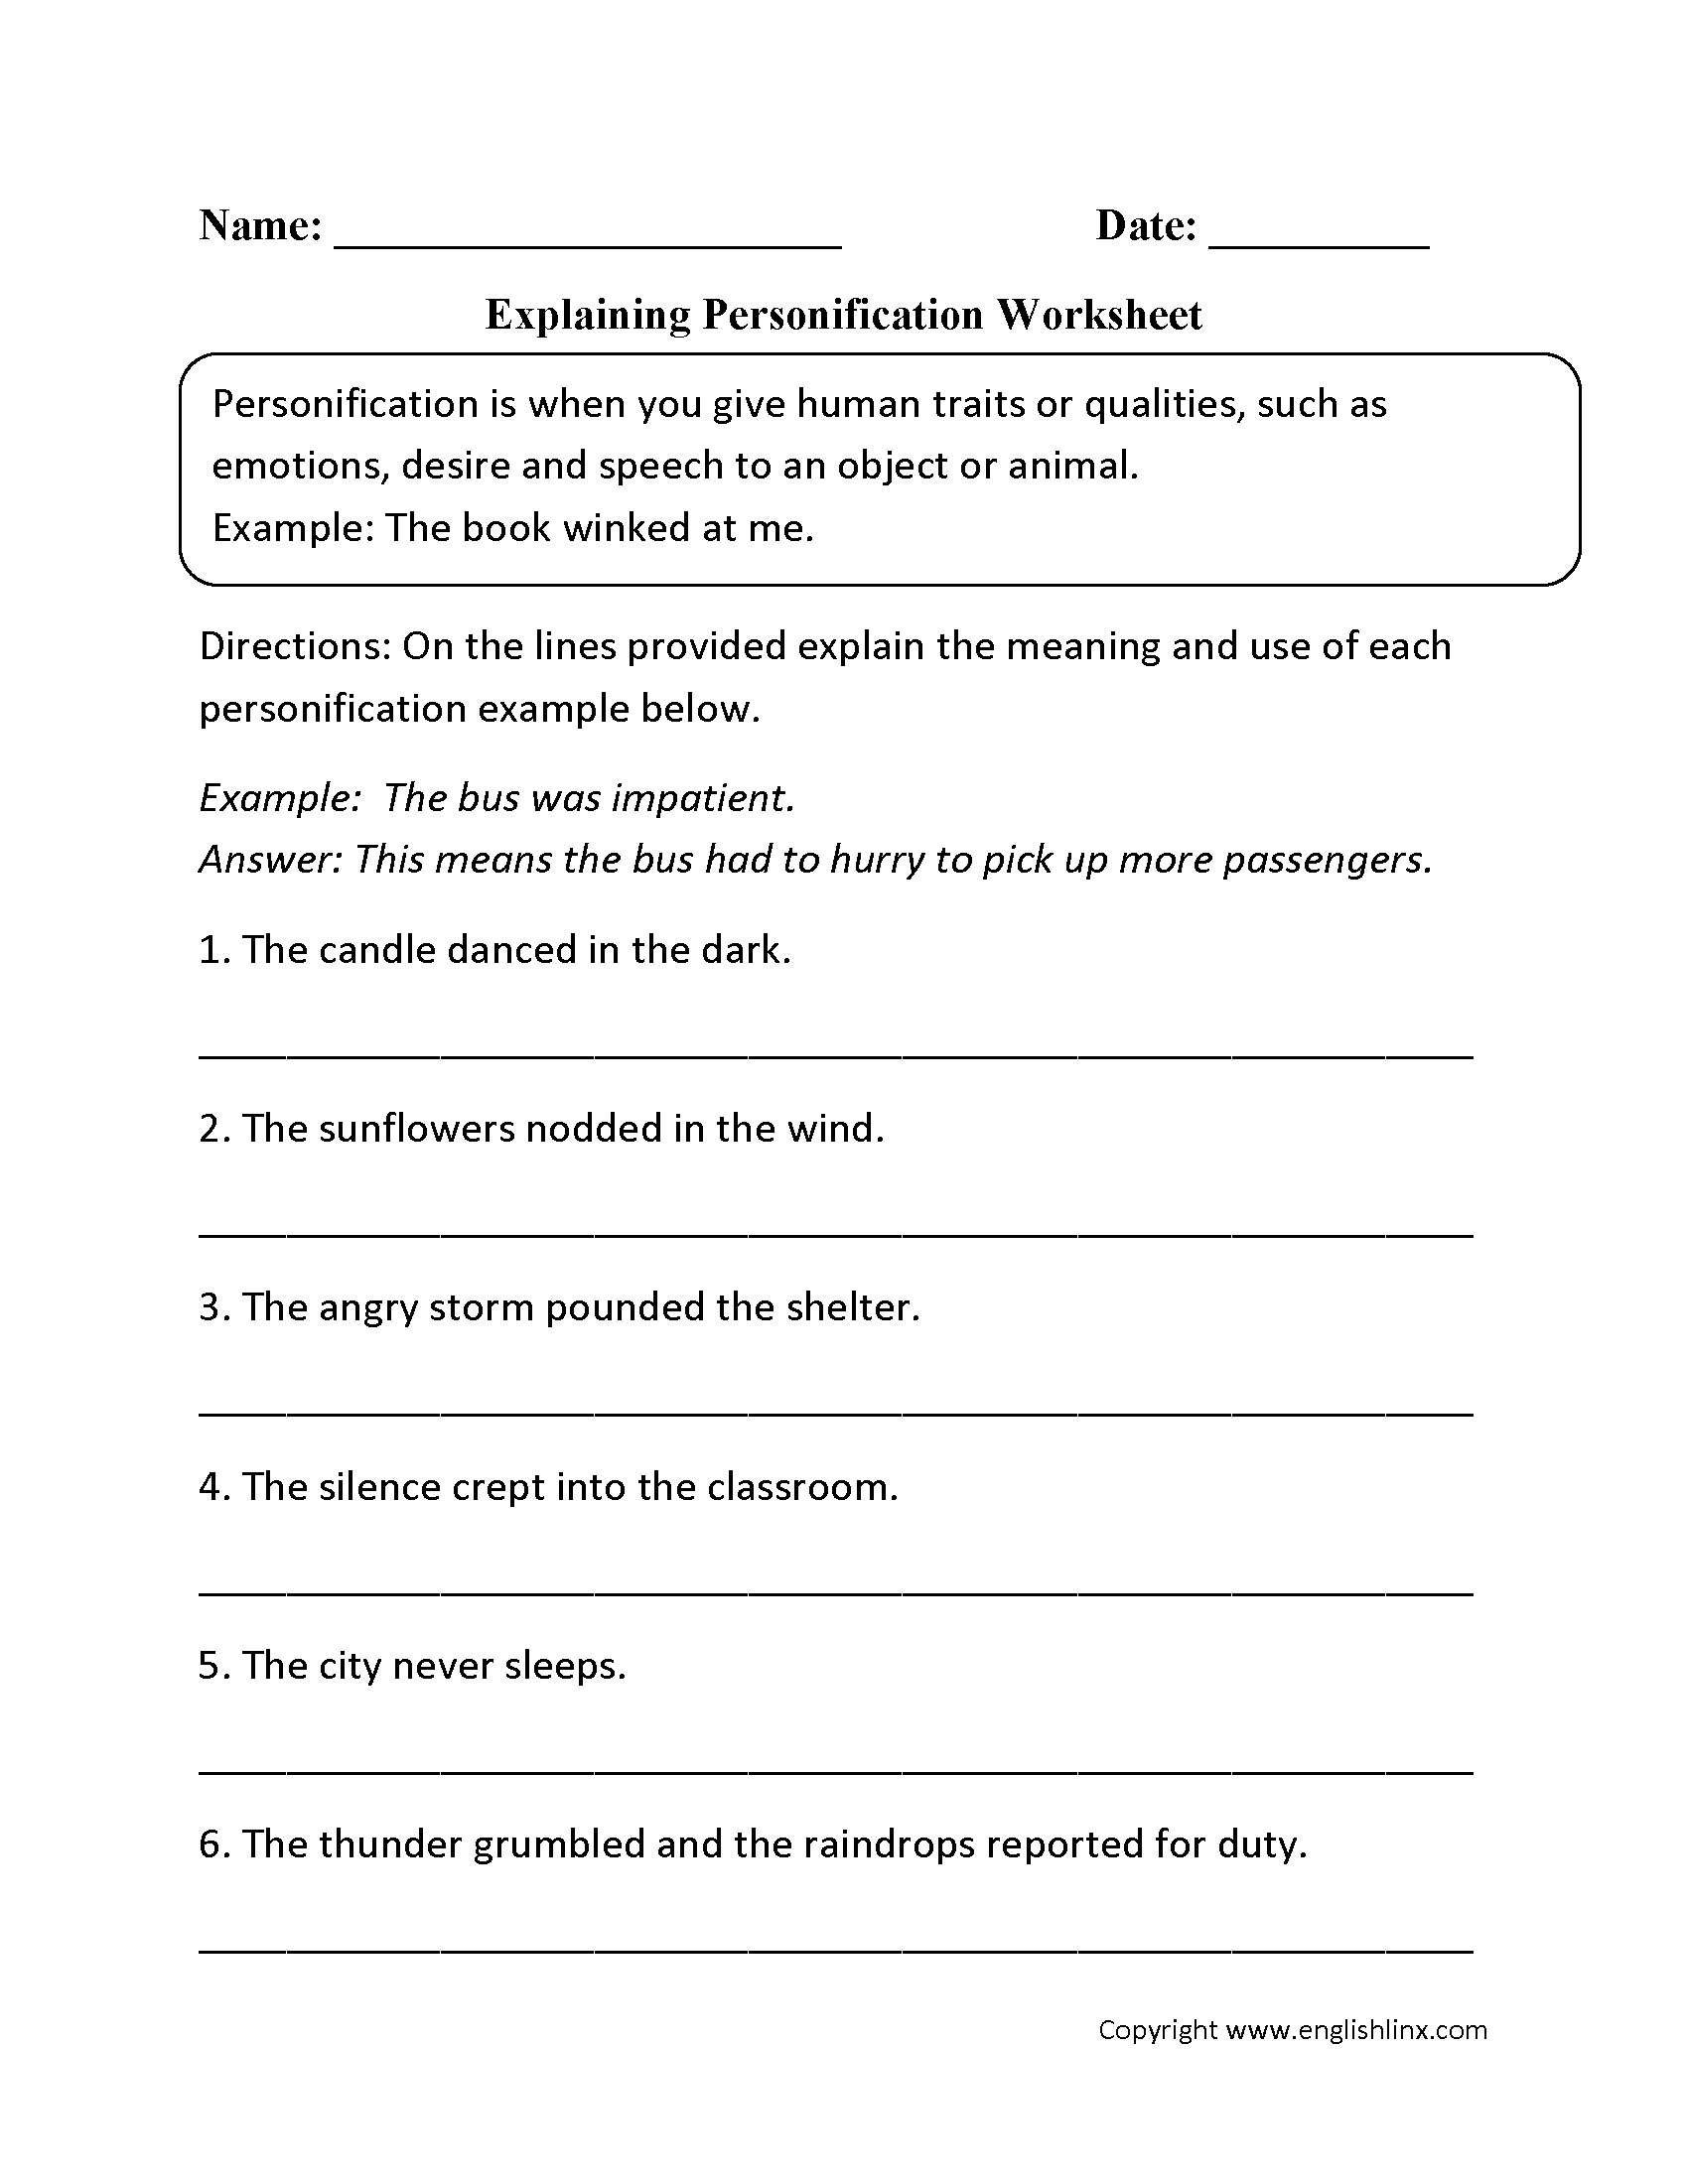 Explaining Personification Worksheet | 3Rd Grade | Figurative | Language Worksheets For 3Rd Grade Printable